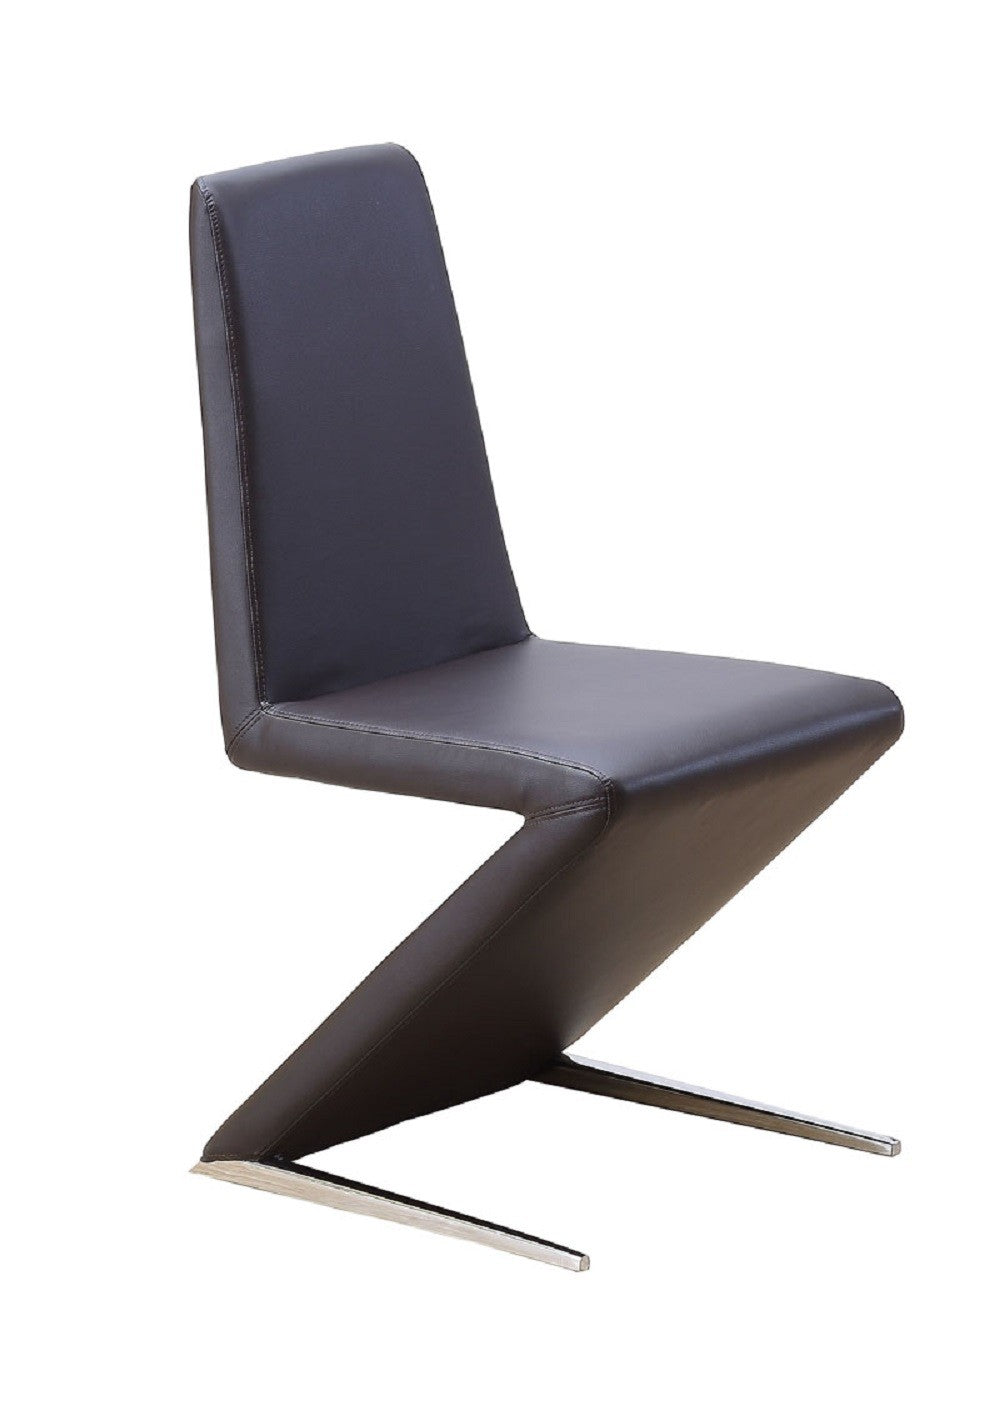 Cologne Dining Chair in Grey